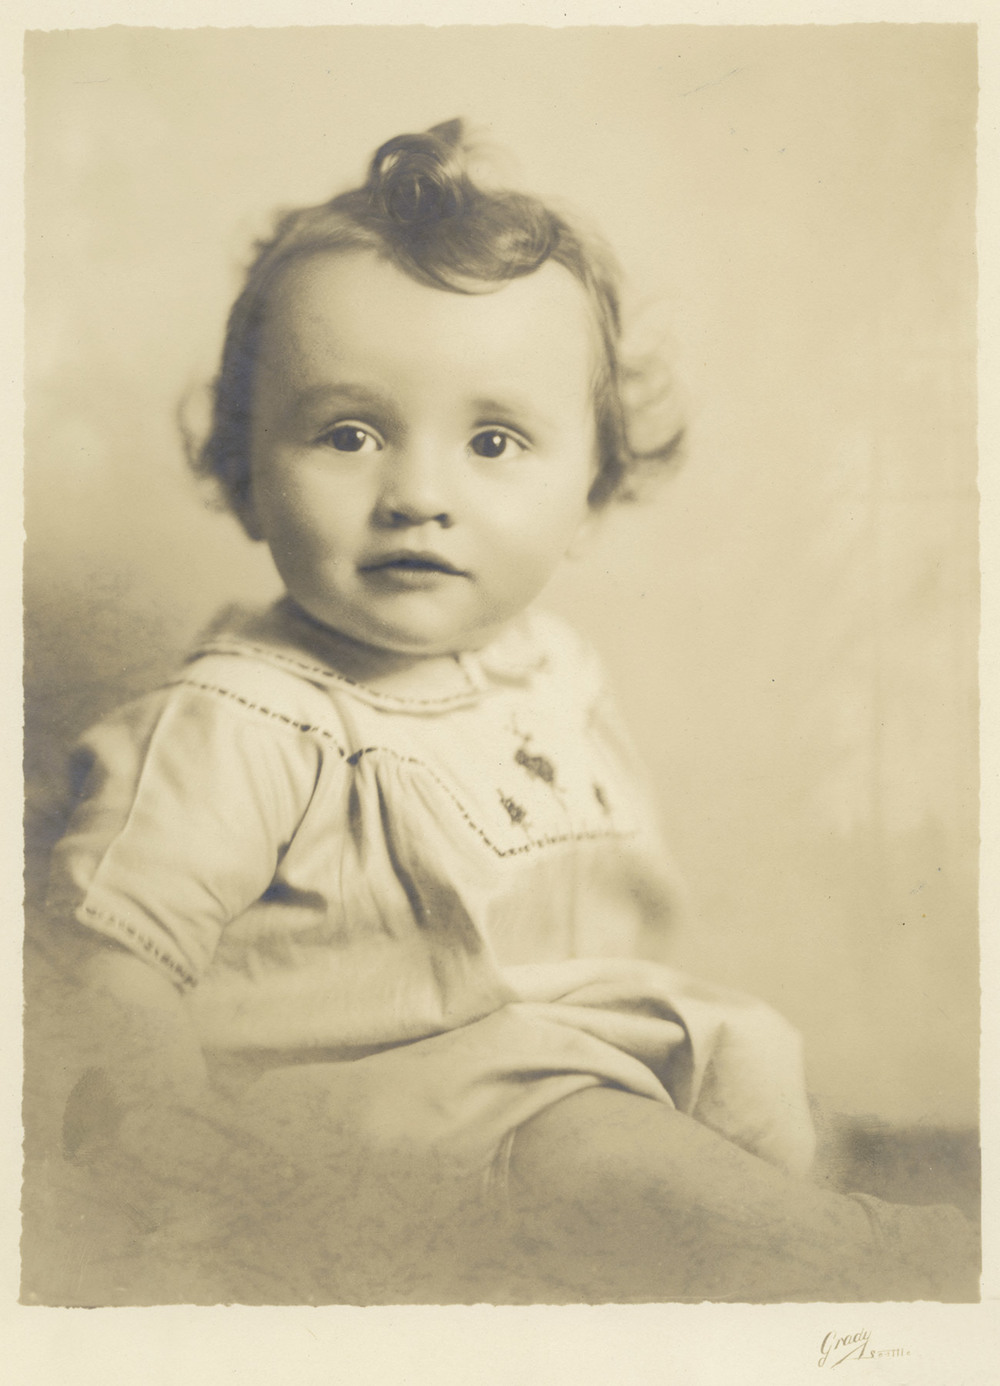 Henry Walker Mines - Age 15 Months